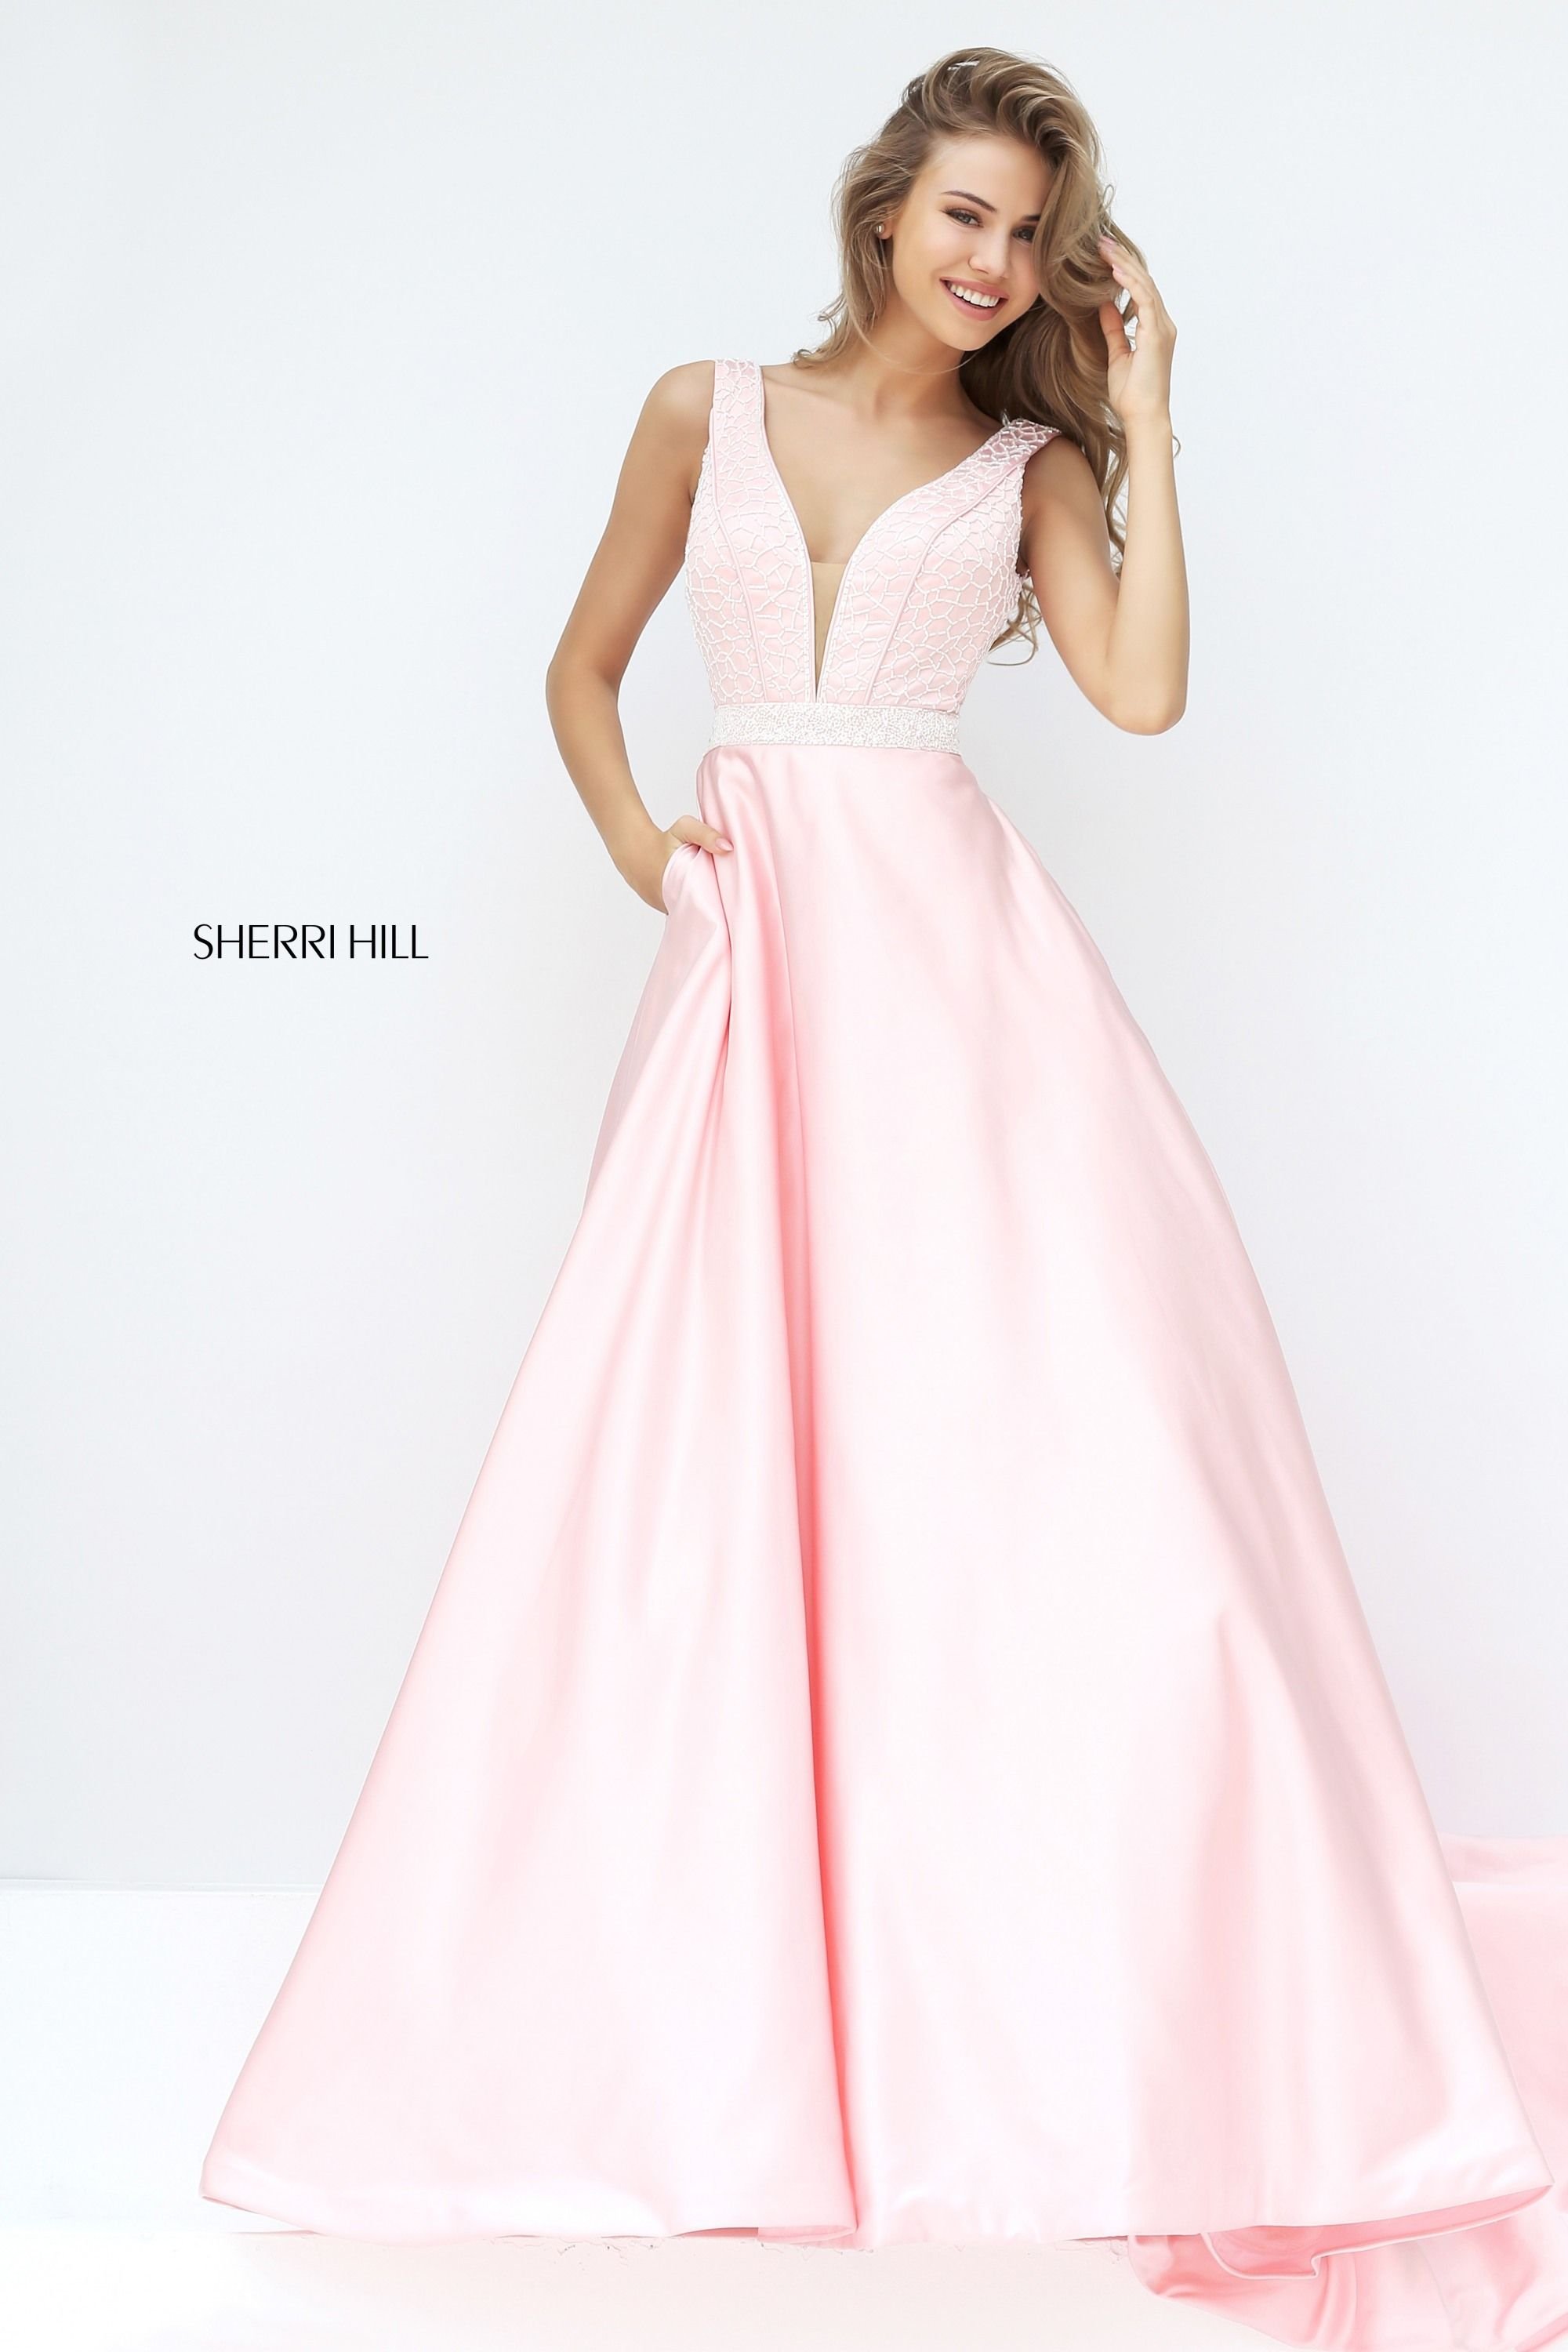 Sherri Hill 50847 | Prom, Prom dress stores and Formal